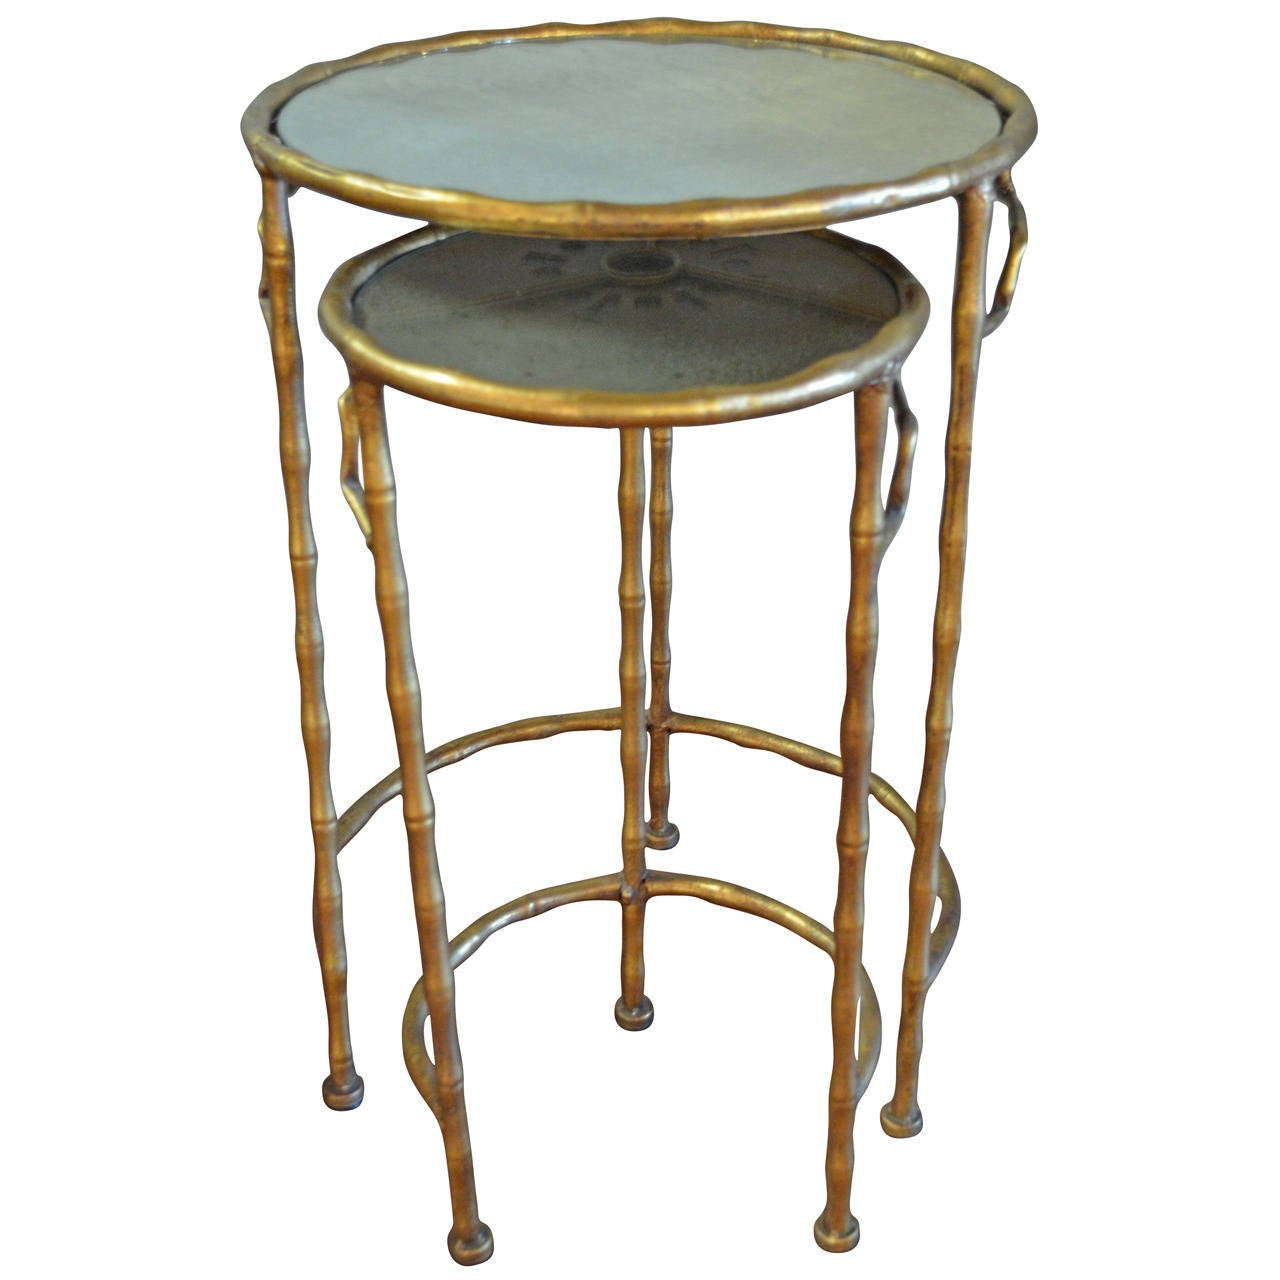 Metal Nesting Tables ~ Nest of two gilded metal bamboo style side tables at stdibs